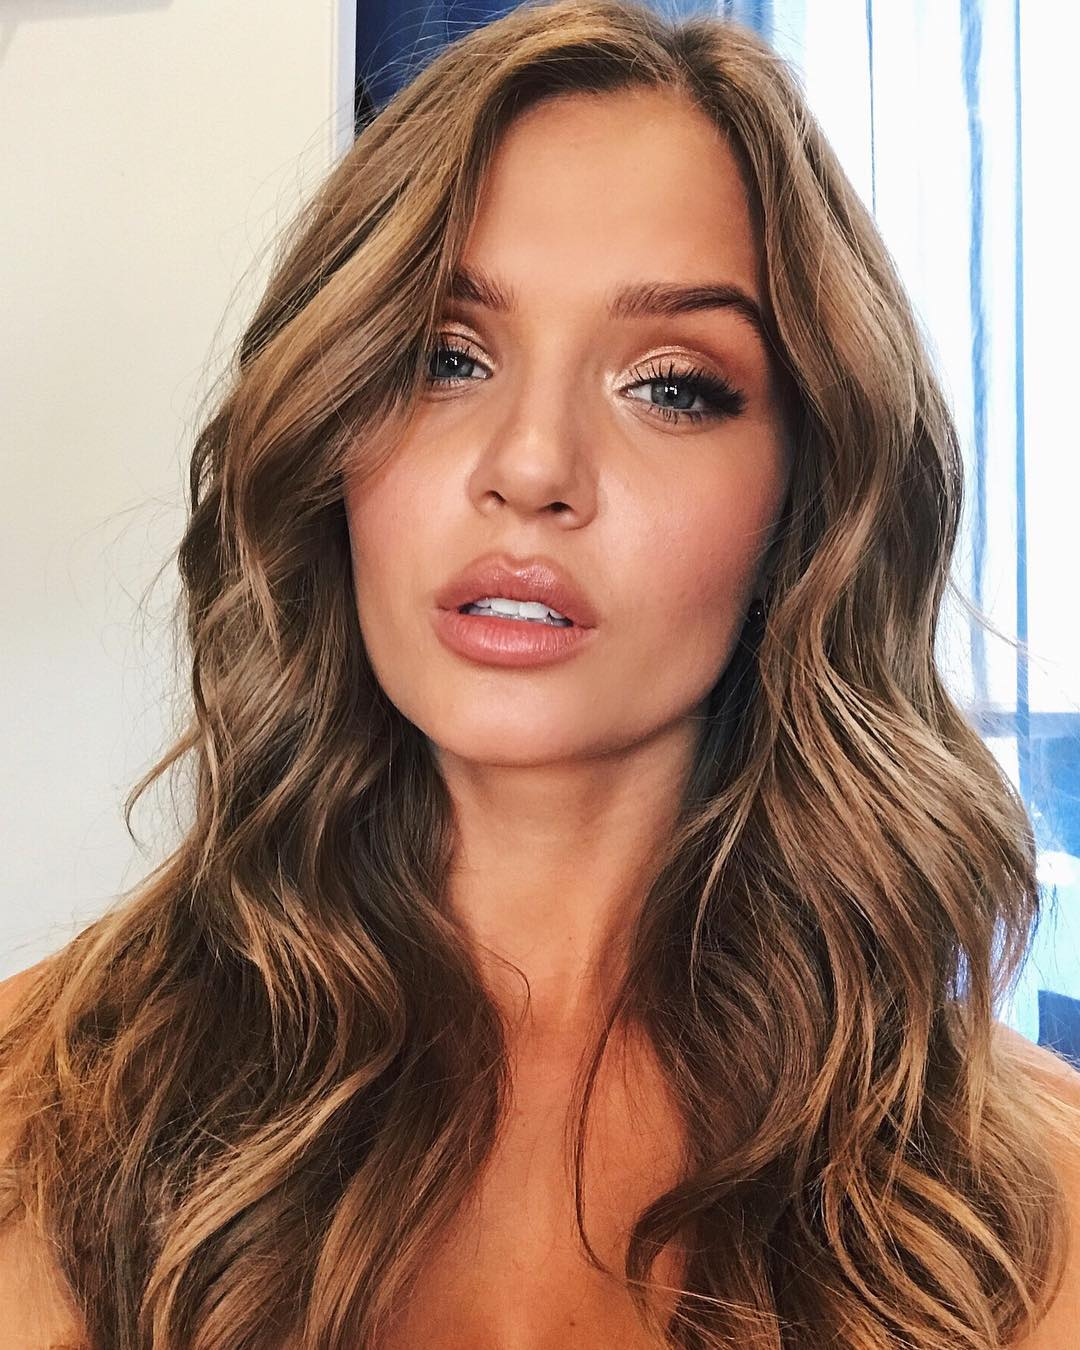 Victoria's Secret Angels Reveal Their Essential, Post-Show Skin & Hair Care Tips